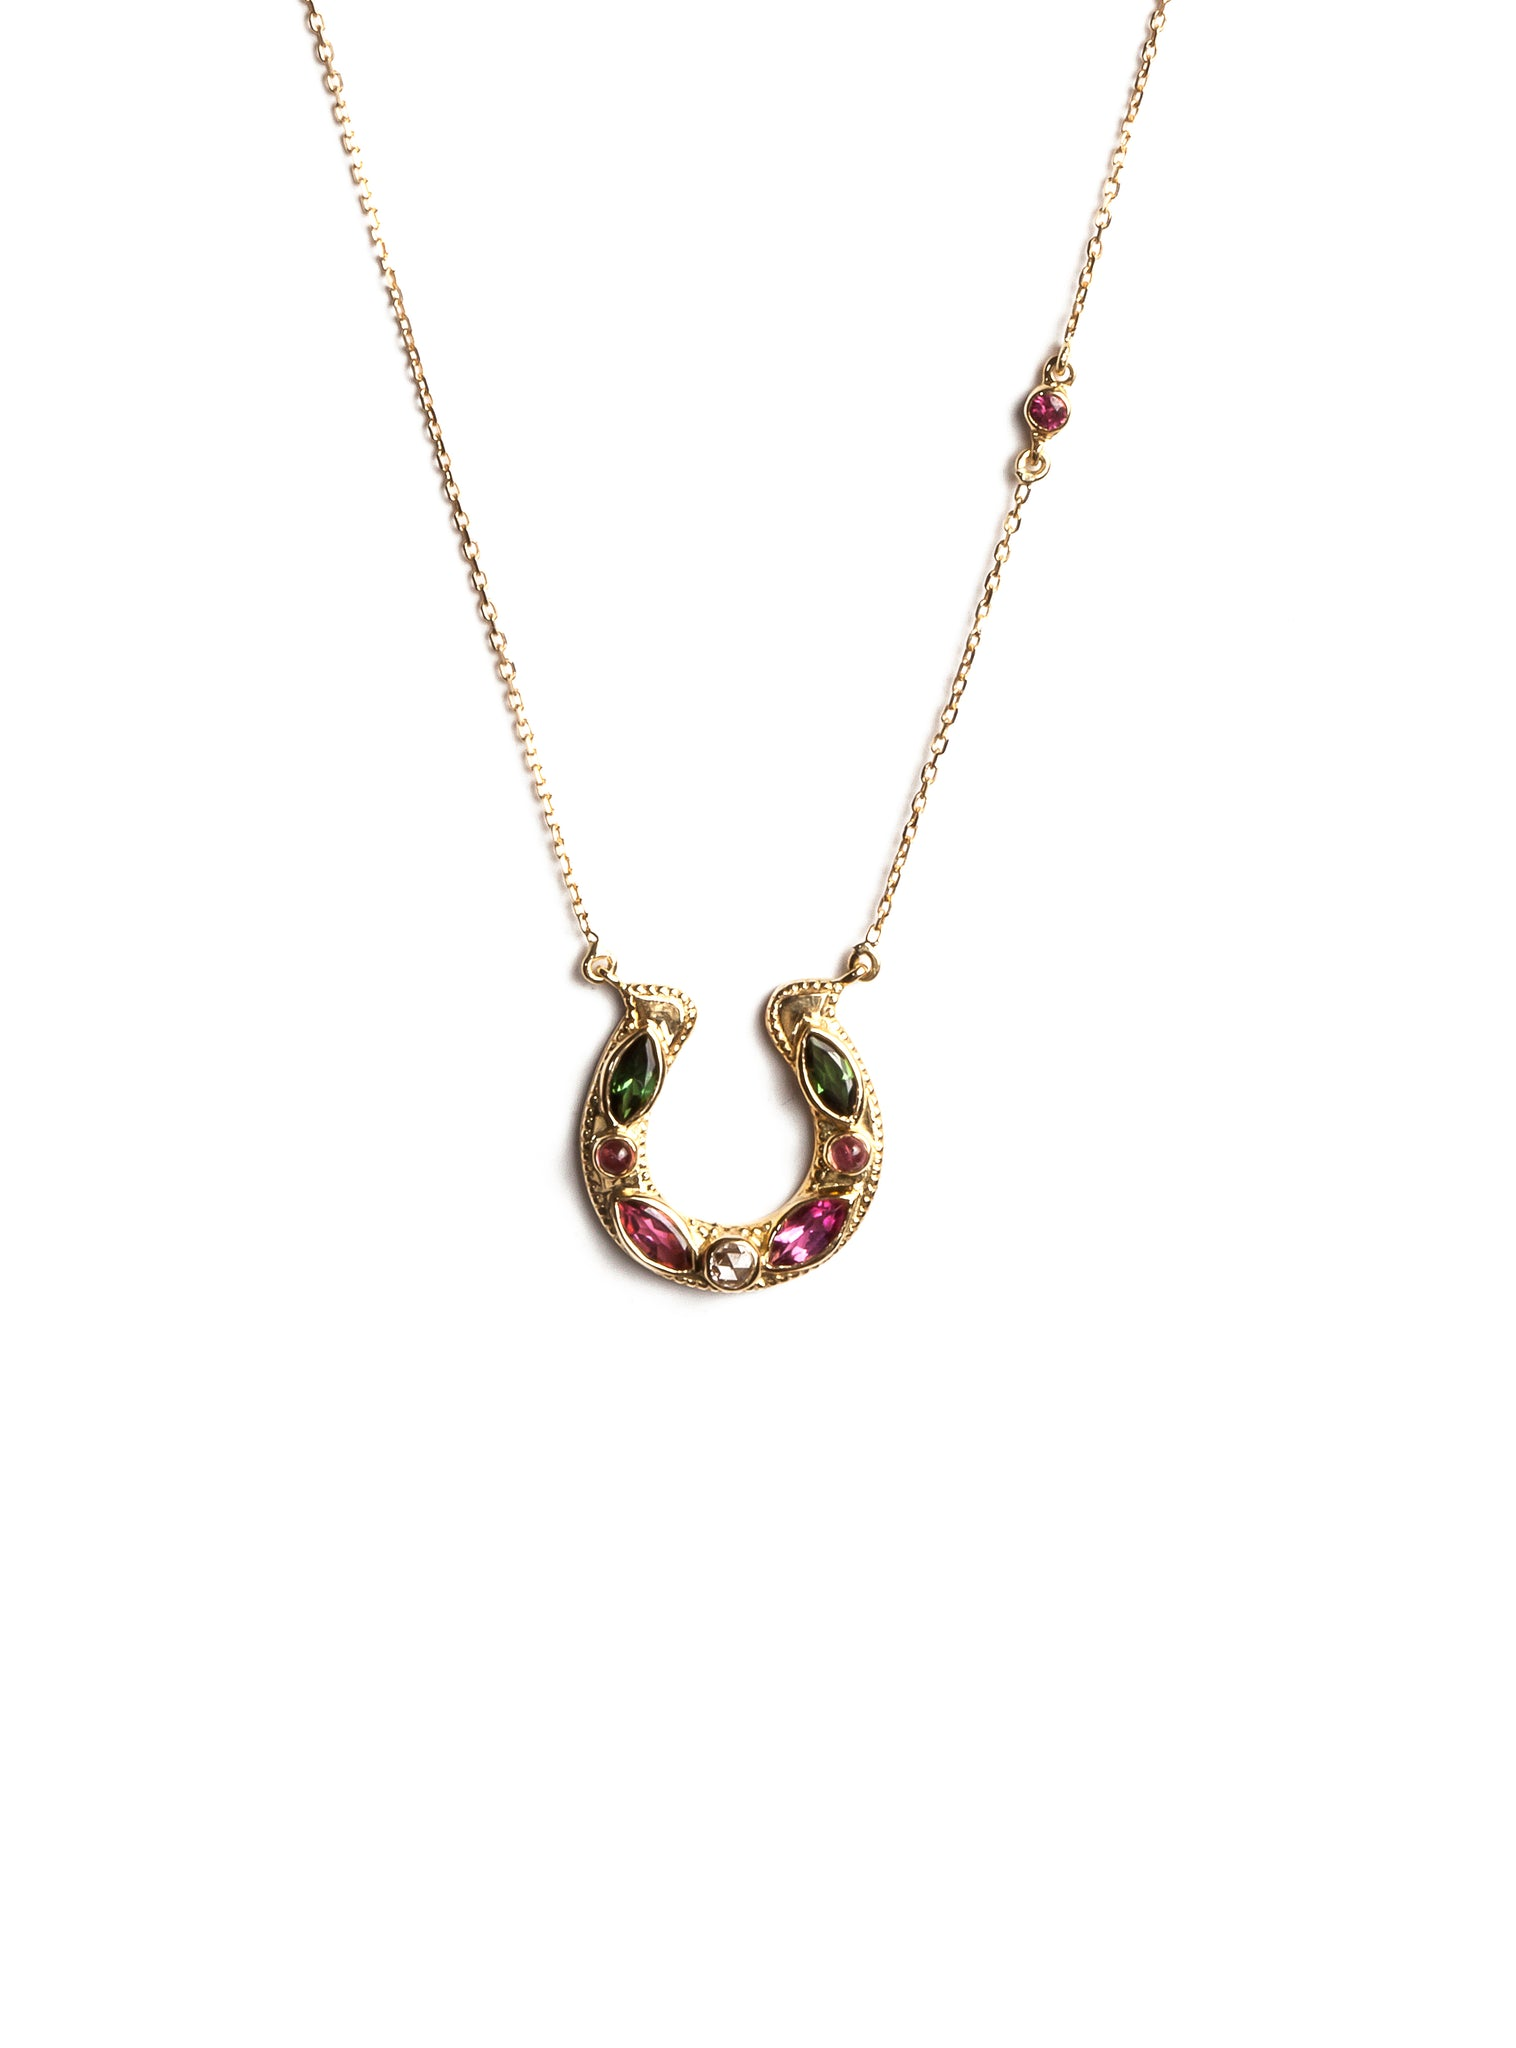 Horseshoe Necklace with Colored Marquess Tourmaline and Diamond